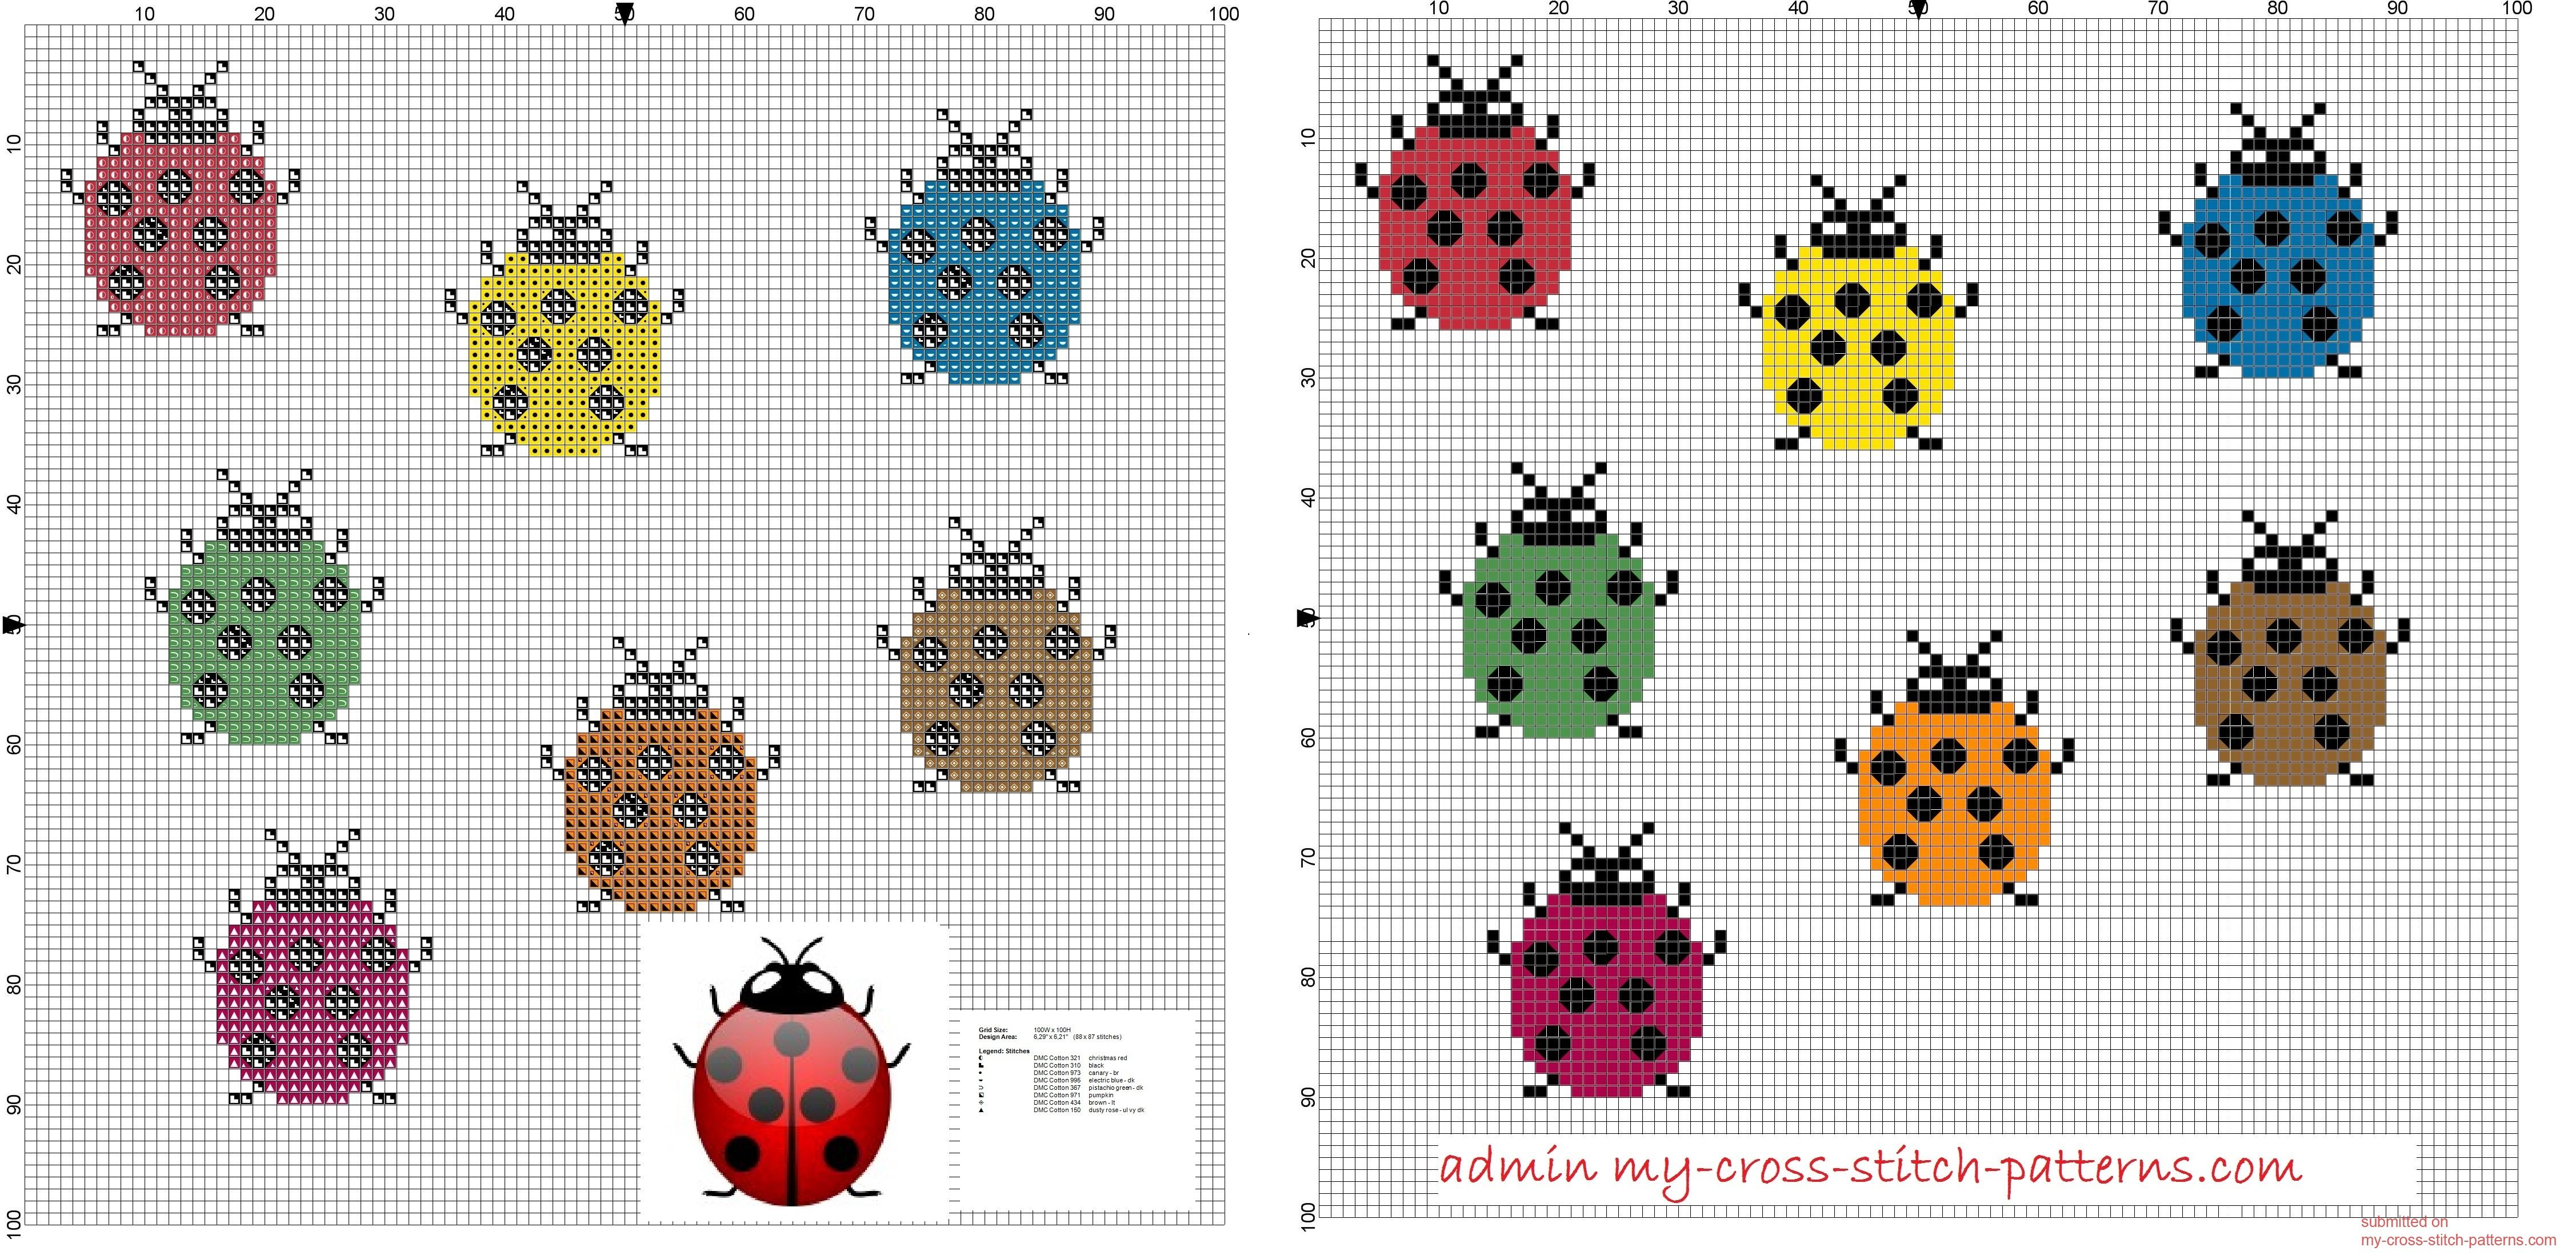 small and simple colored ladybugs cross stitch pattern free 20x23